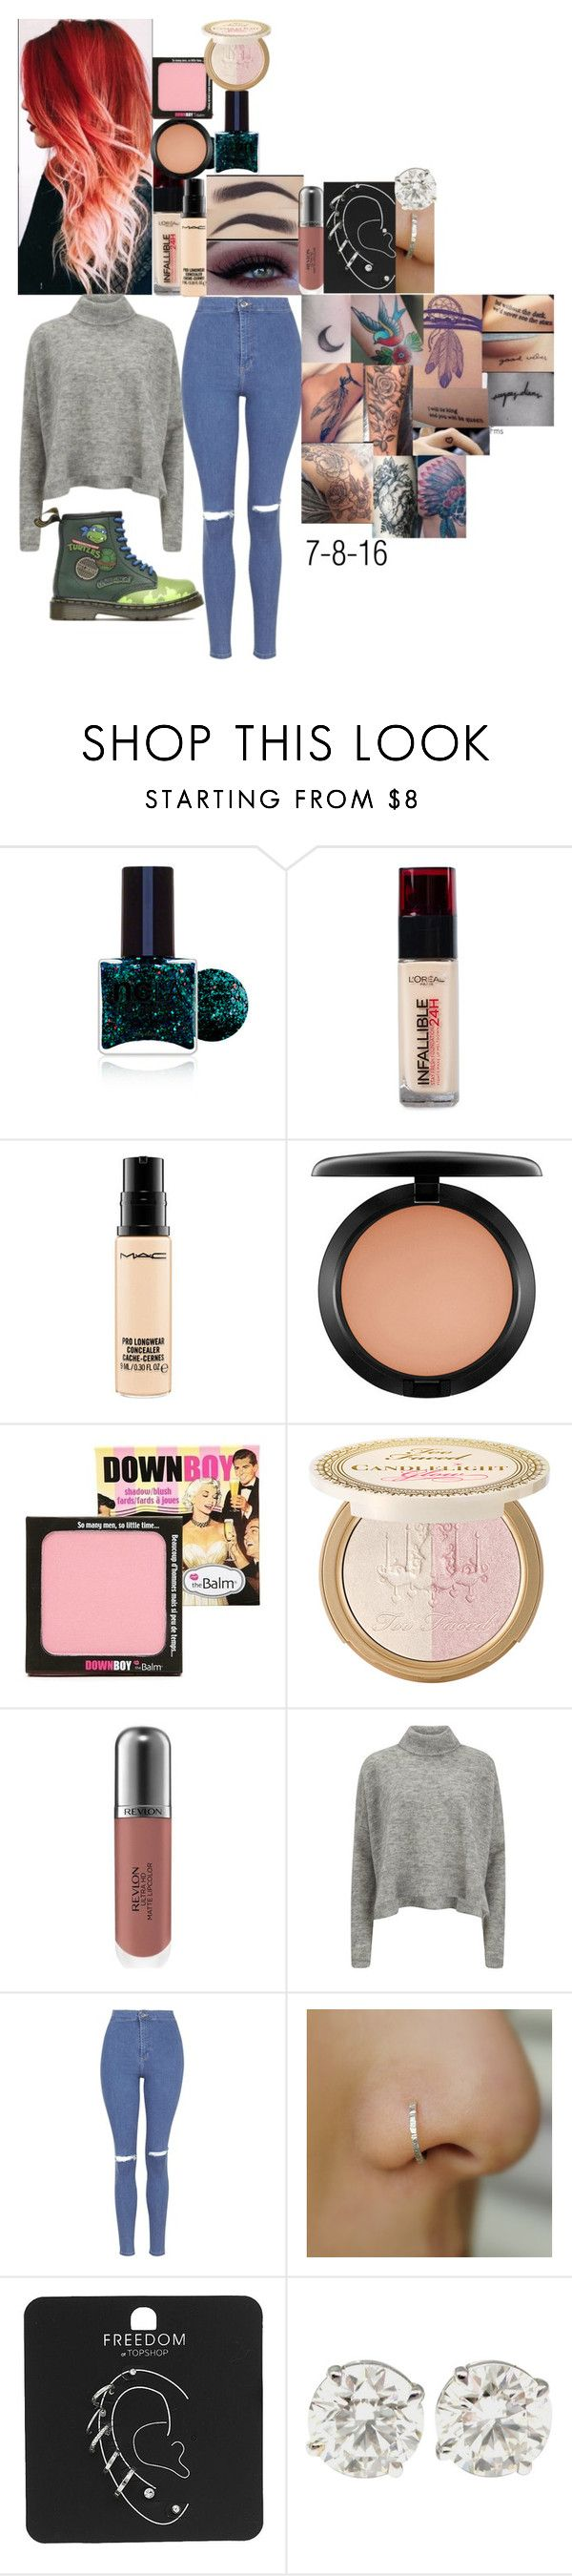 """Don't threaten me with a good time tour diary hamburg"" by fuckmeirwin ❤ liked on Polyvore featuring ncLA, L'Oréal Paris, MAC Cosmetics, TheBalm, Power of Makeup, Revlon, Designers Remix, Topshop and Dr. Martens"